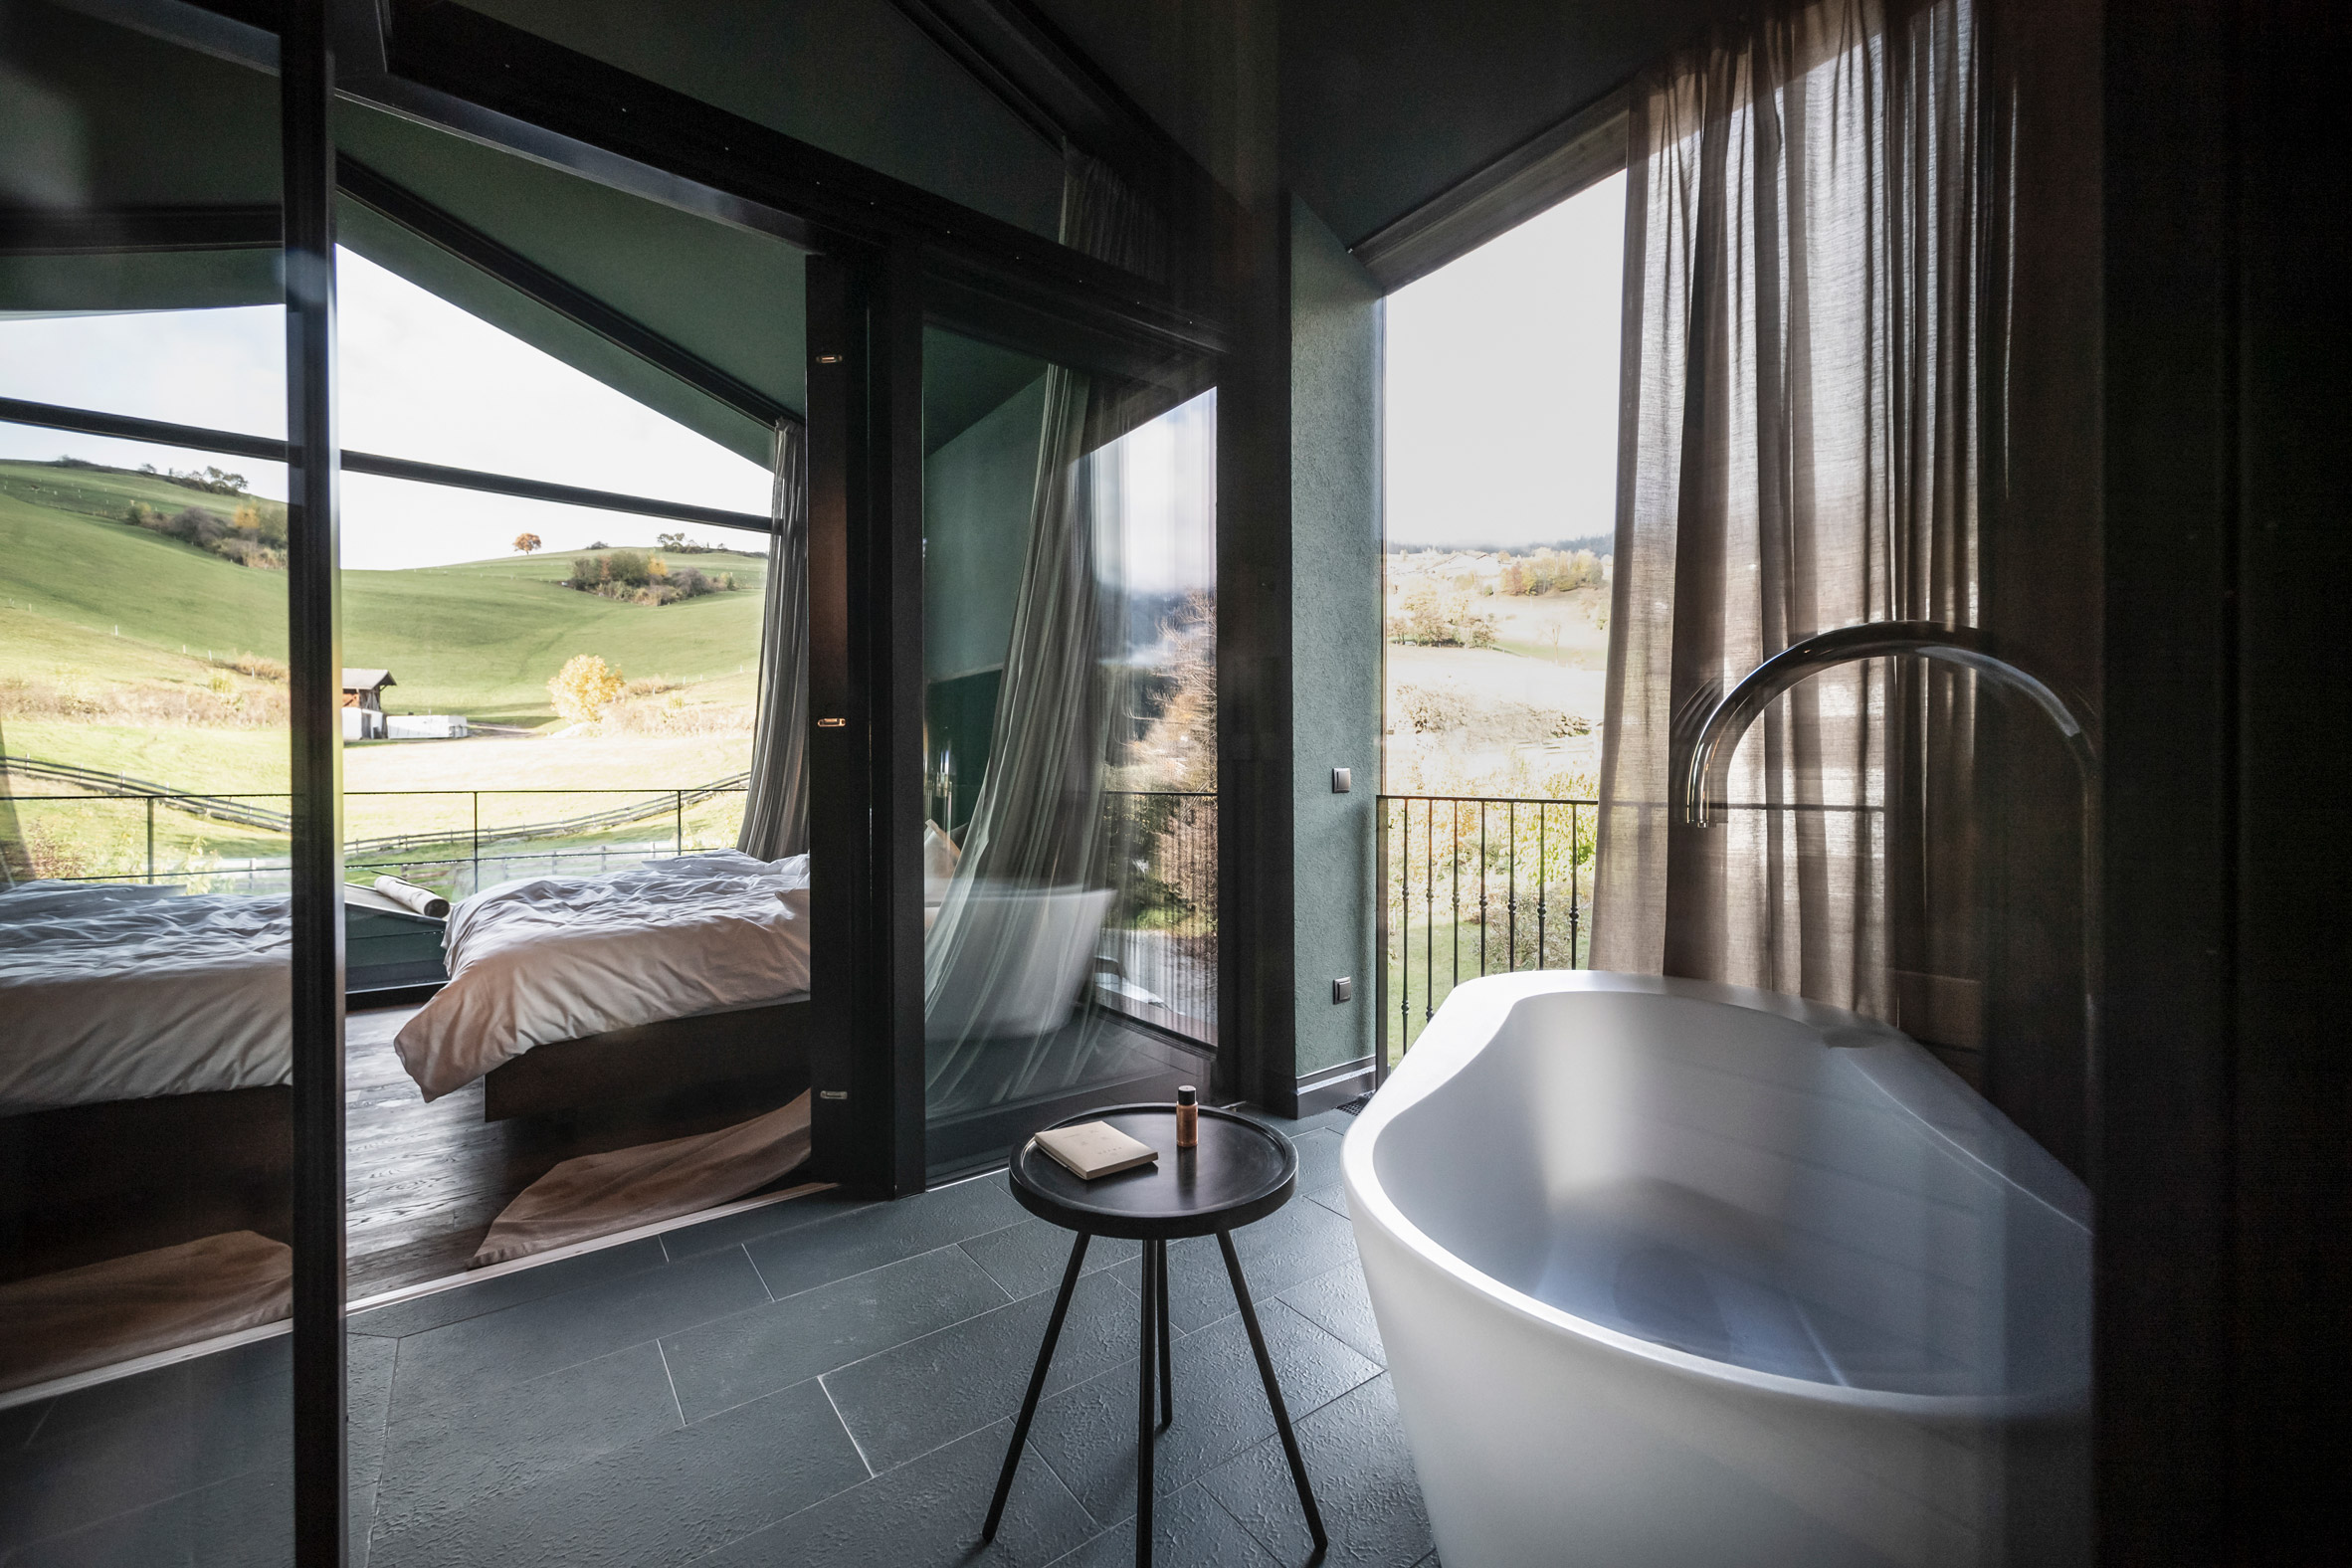 A bathroom and sauna in the Floris hotel extension by NOA